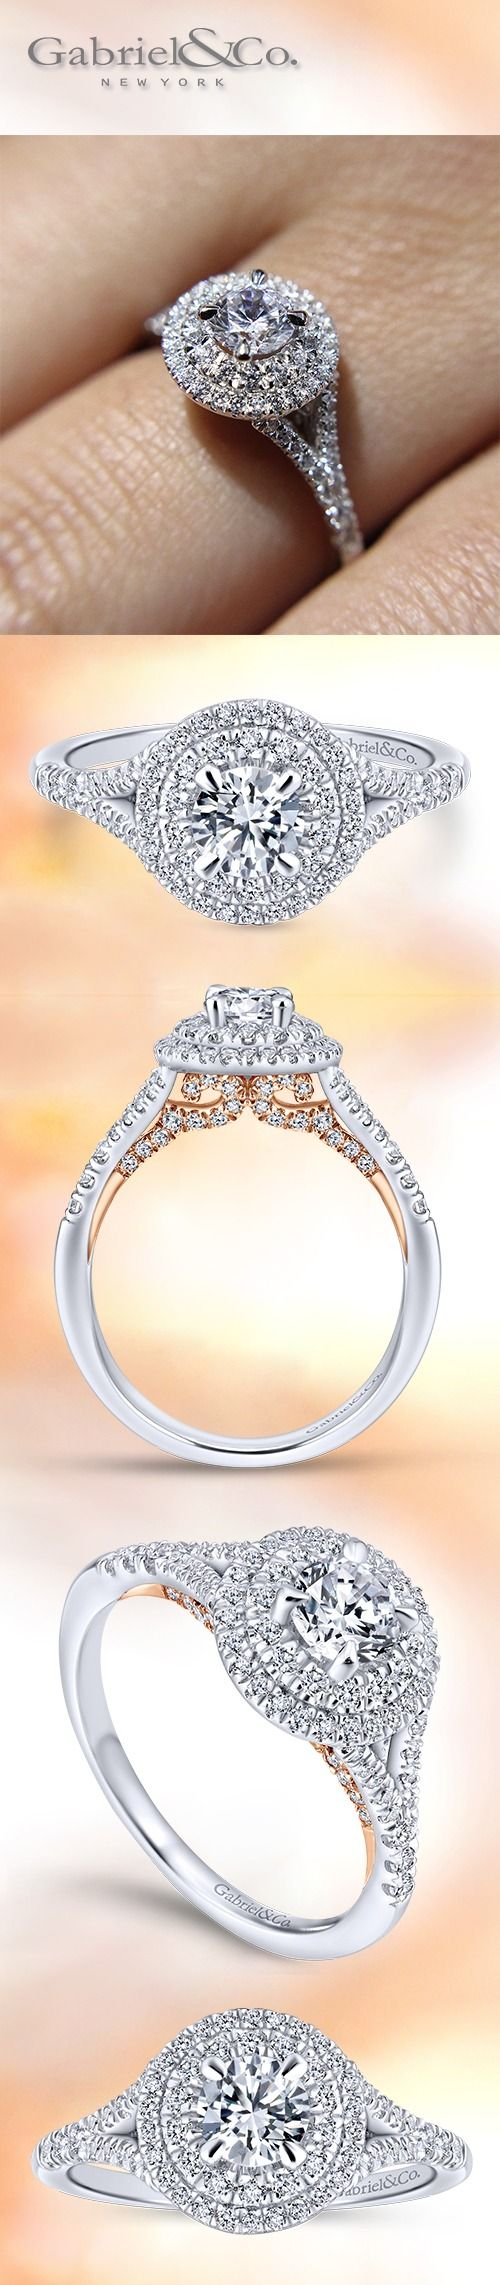 Gabriel NY - Preferred Fine Jewelry and Bridal Brand. 14k White Gold / Rose Gold Round Double Halo Engagement Ring. This double diamond halo ring also features a split shank, while surprise rose gold and diamond details wait beneath the band. Find your nearest retailer-> https://www.gabrielny.com/storelocator